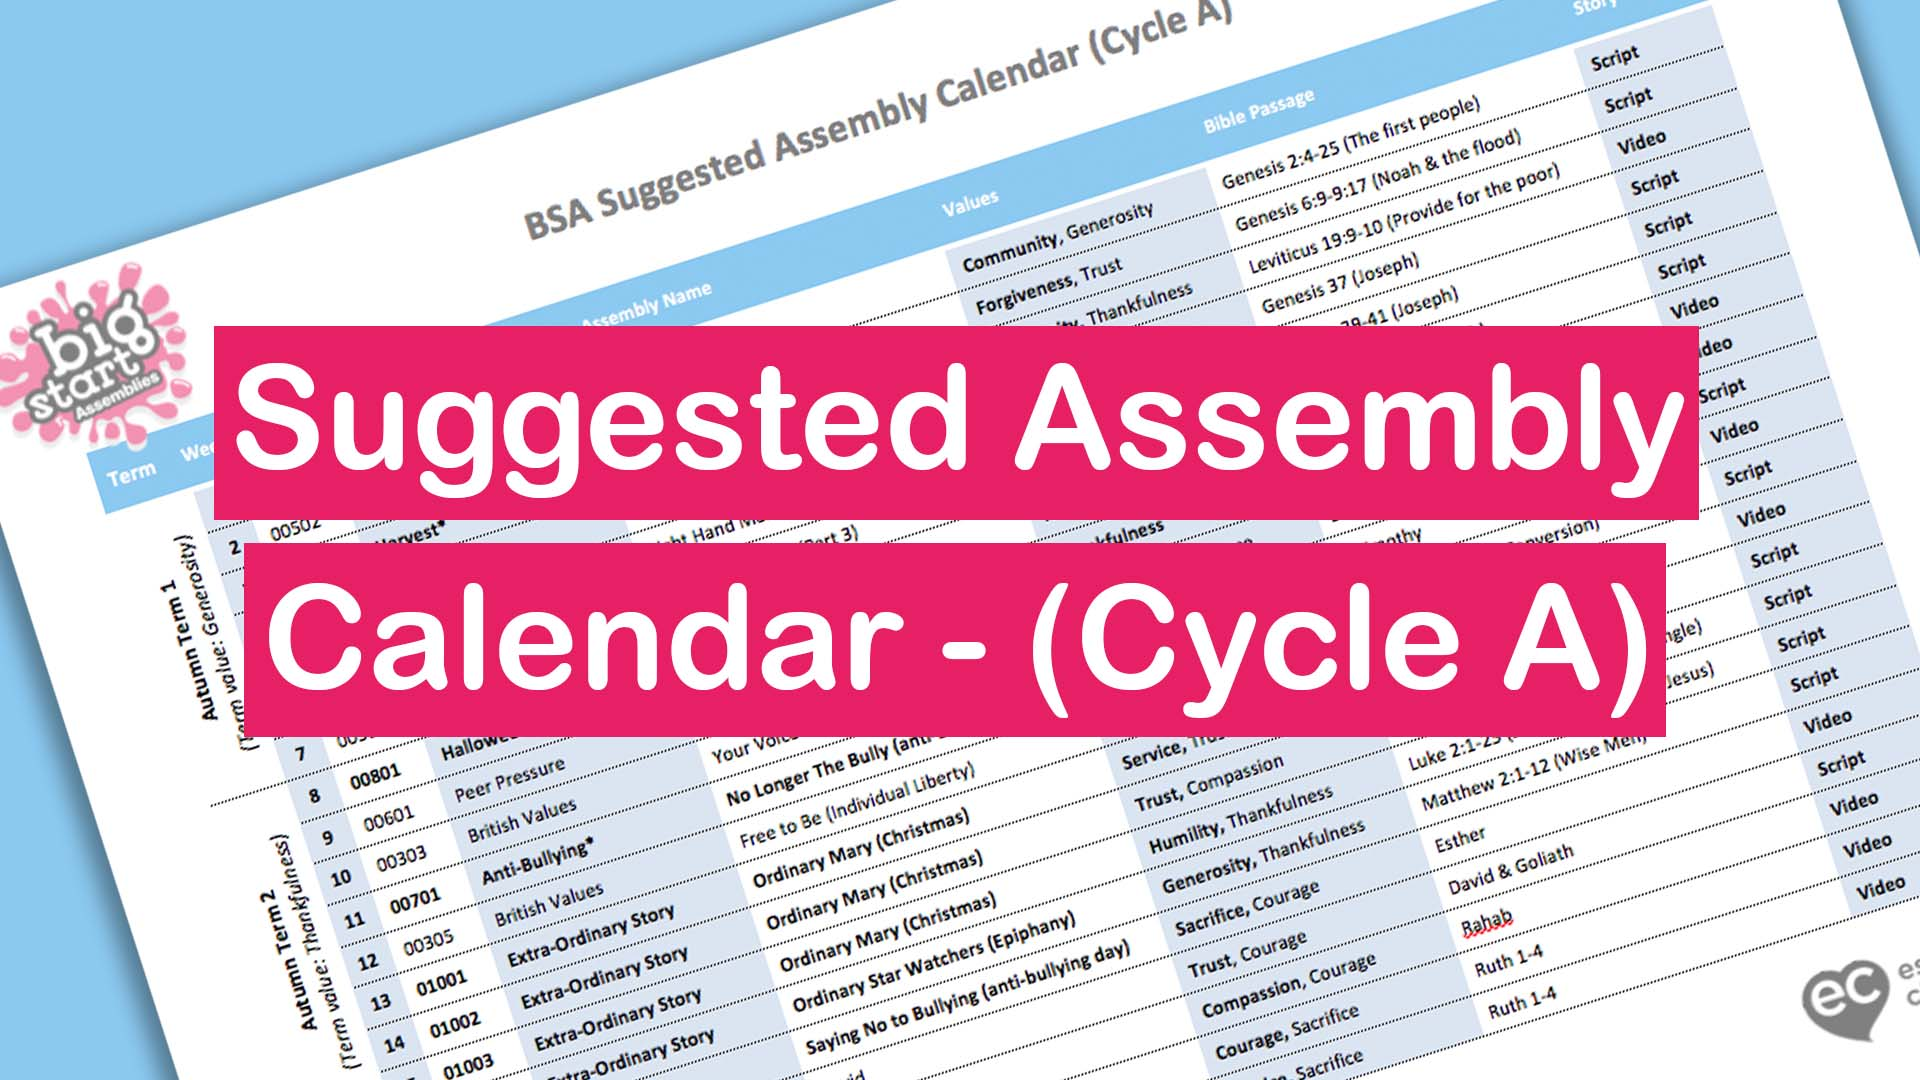 Suggested Assembly Calendar